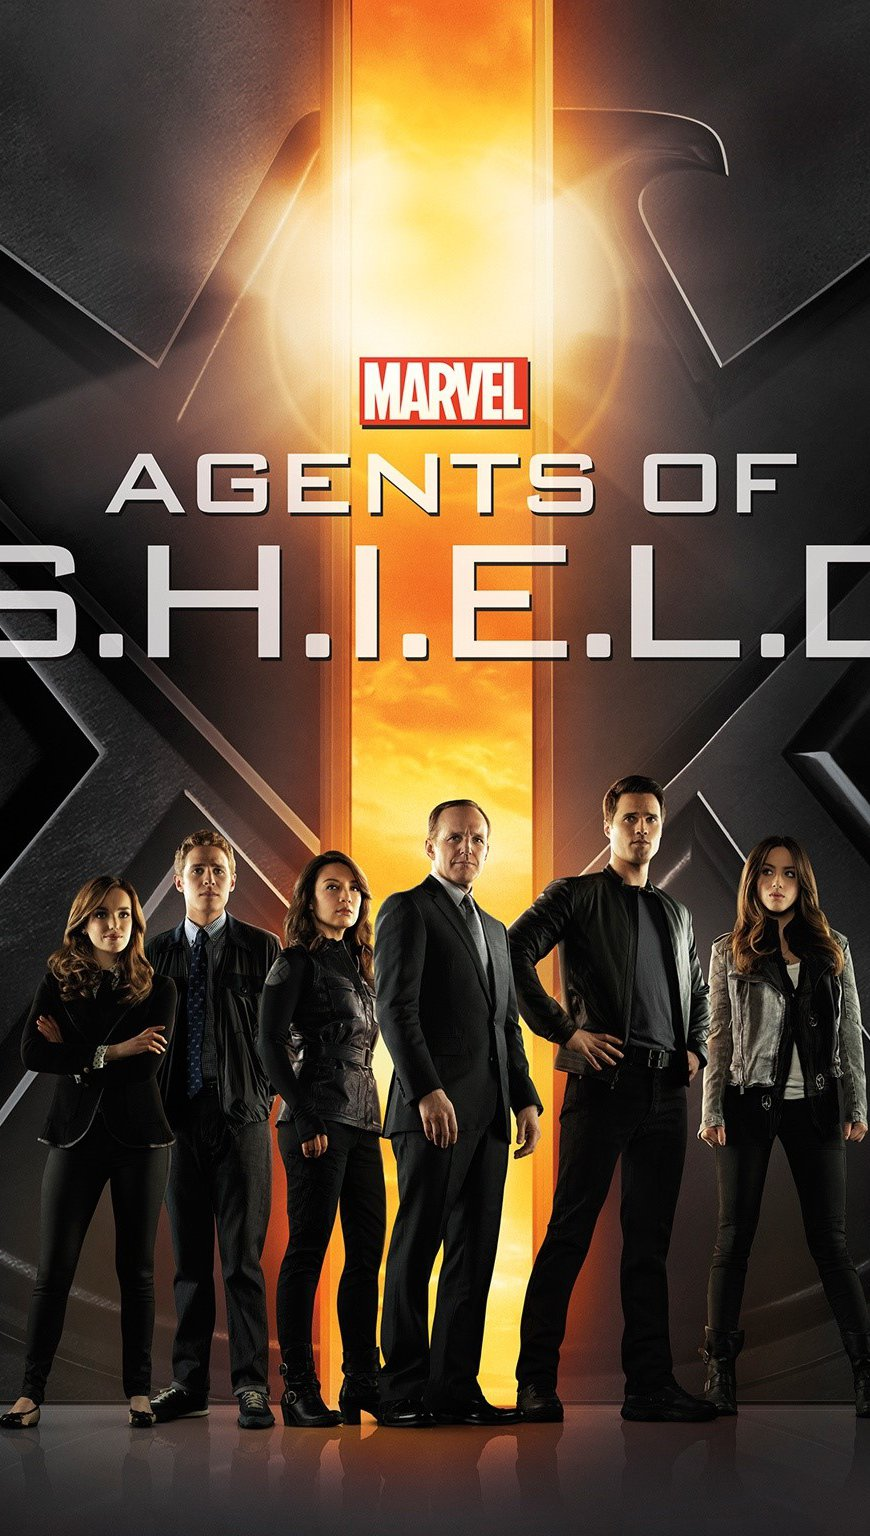 Wallpaper Agents of shield Vertical